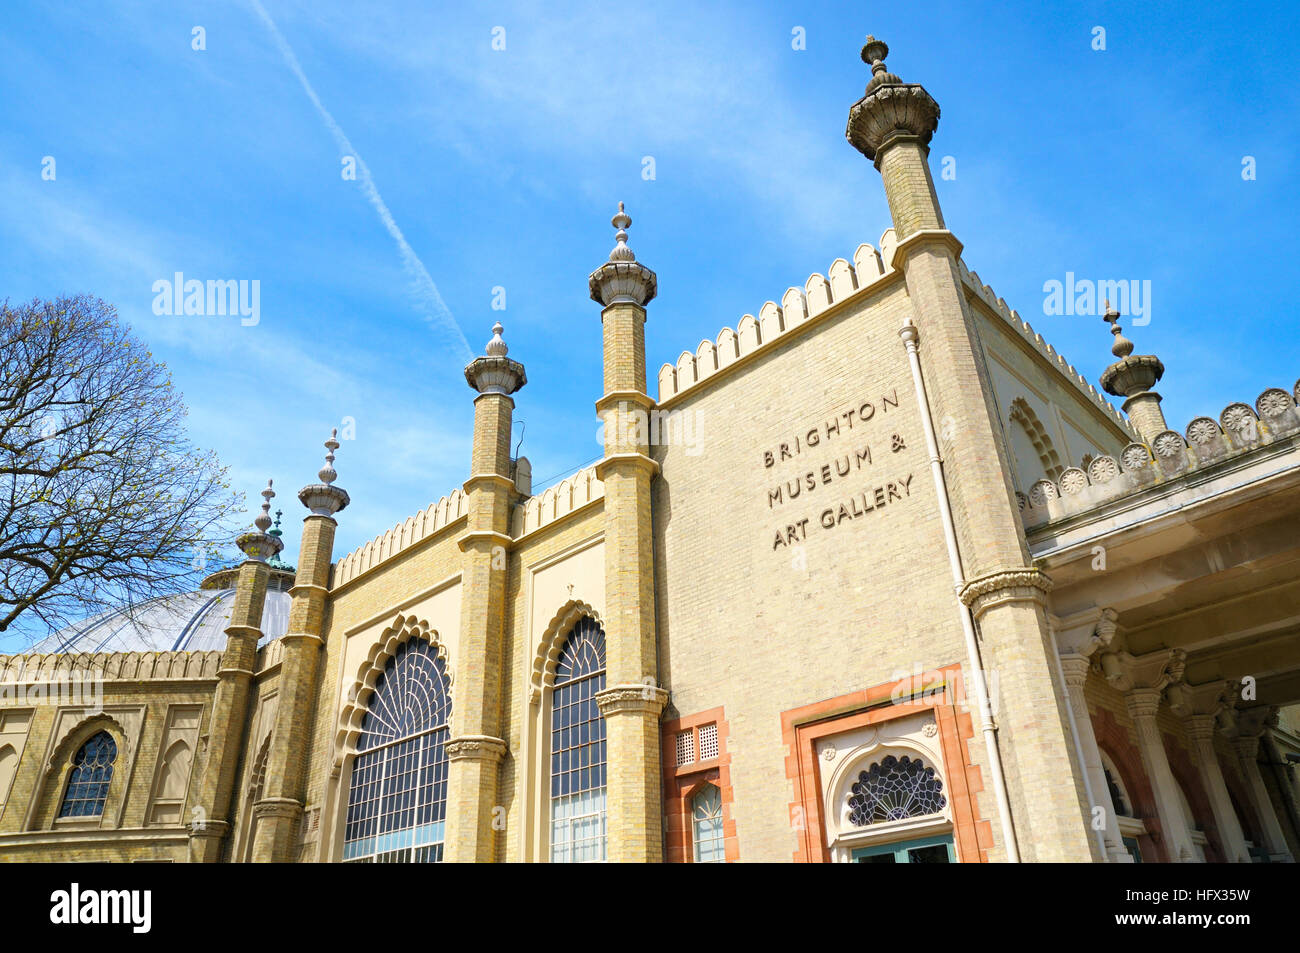 Brighton Museum and Art Gallery in the Royal Pavilion Gardens, Brighton, East Sussex, UK - Stock Image